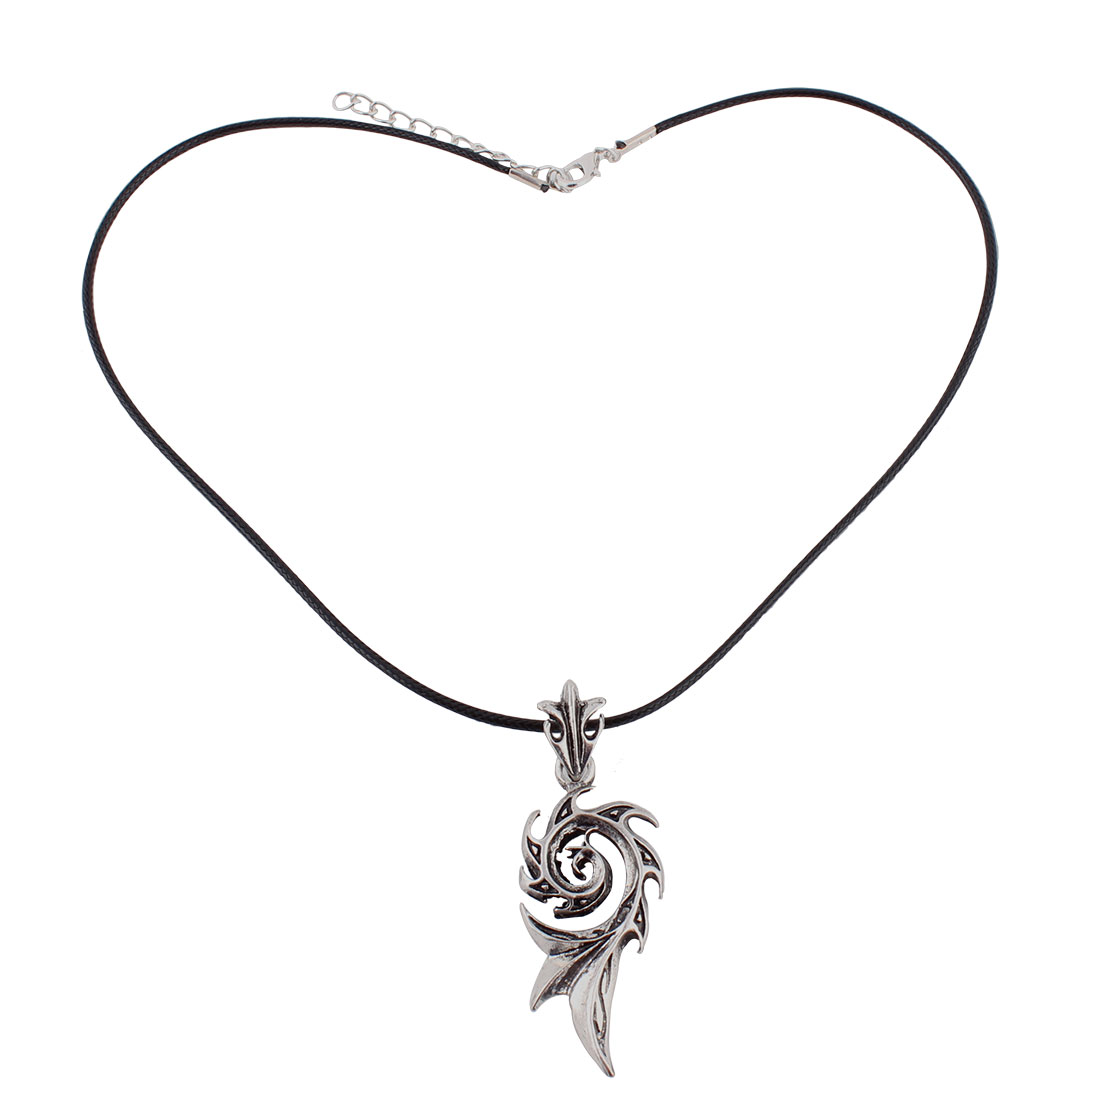 Unisex Metal Flower Shaped Pendant Braided Nylon String Necklace Black Silver Tone